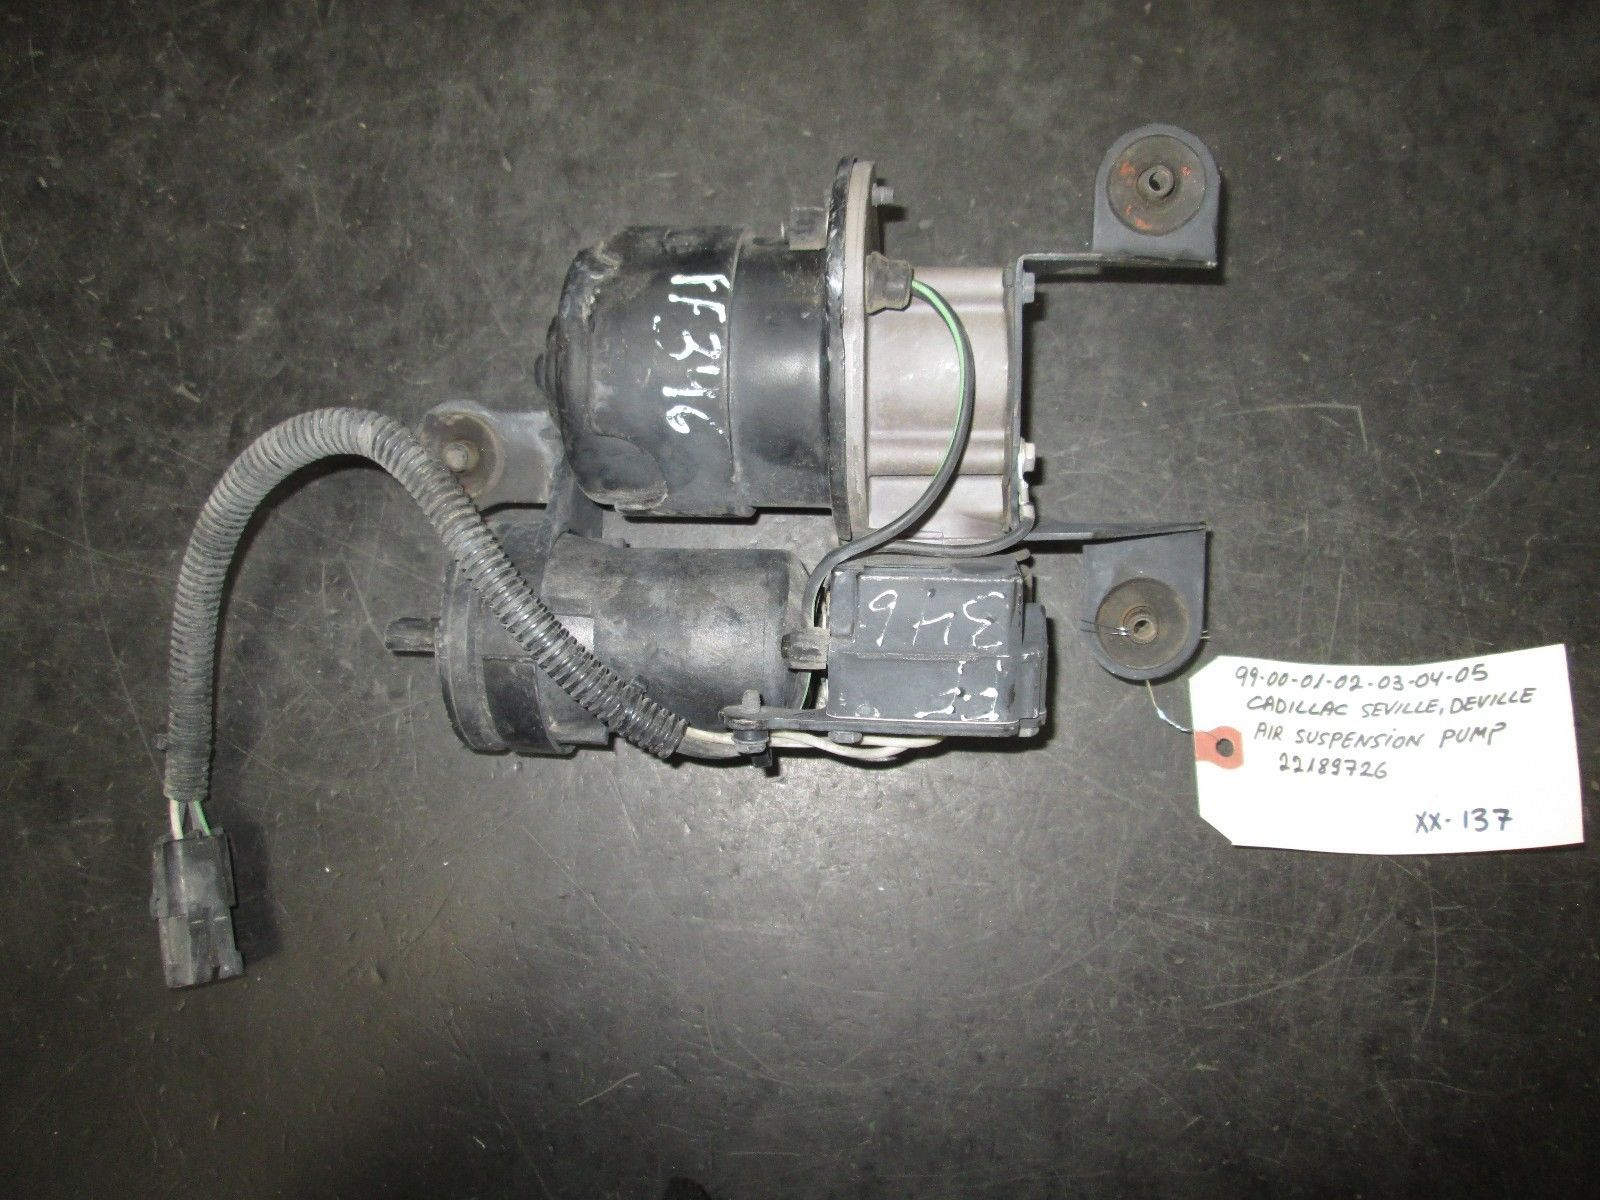 Primary image for 99 00 01 02 03 04 05 CADILLAC SEVILLE AIR SUSPENSION PUMP #22189726 *See item*